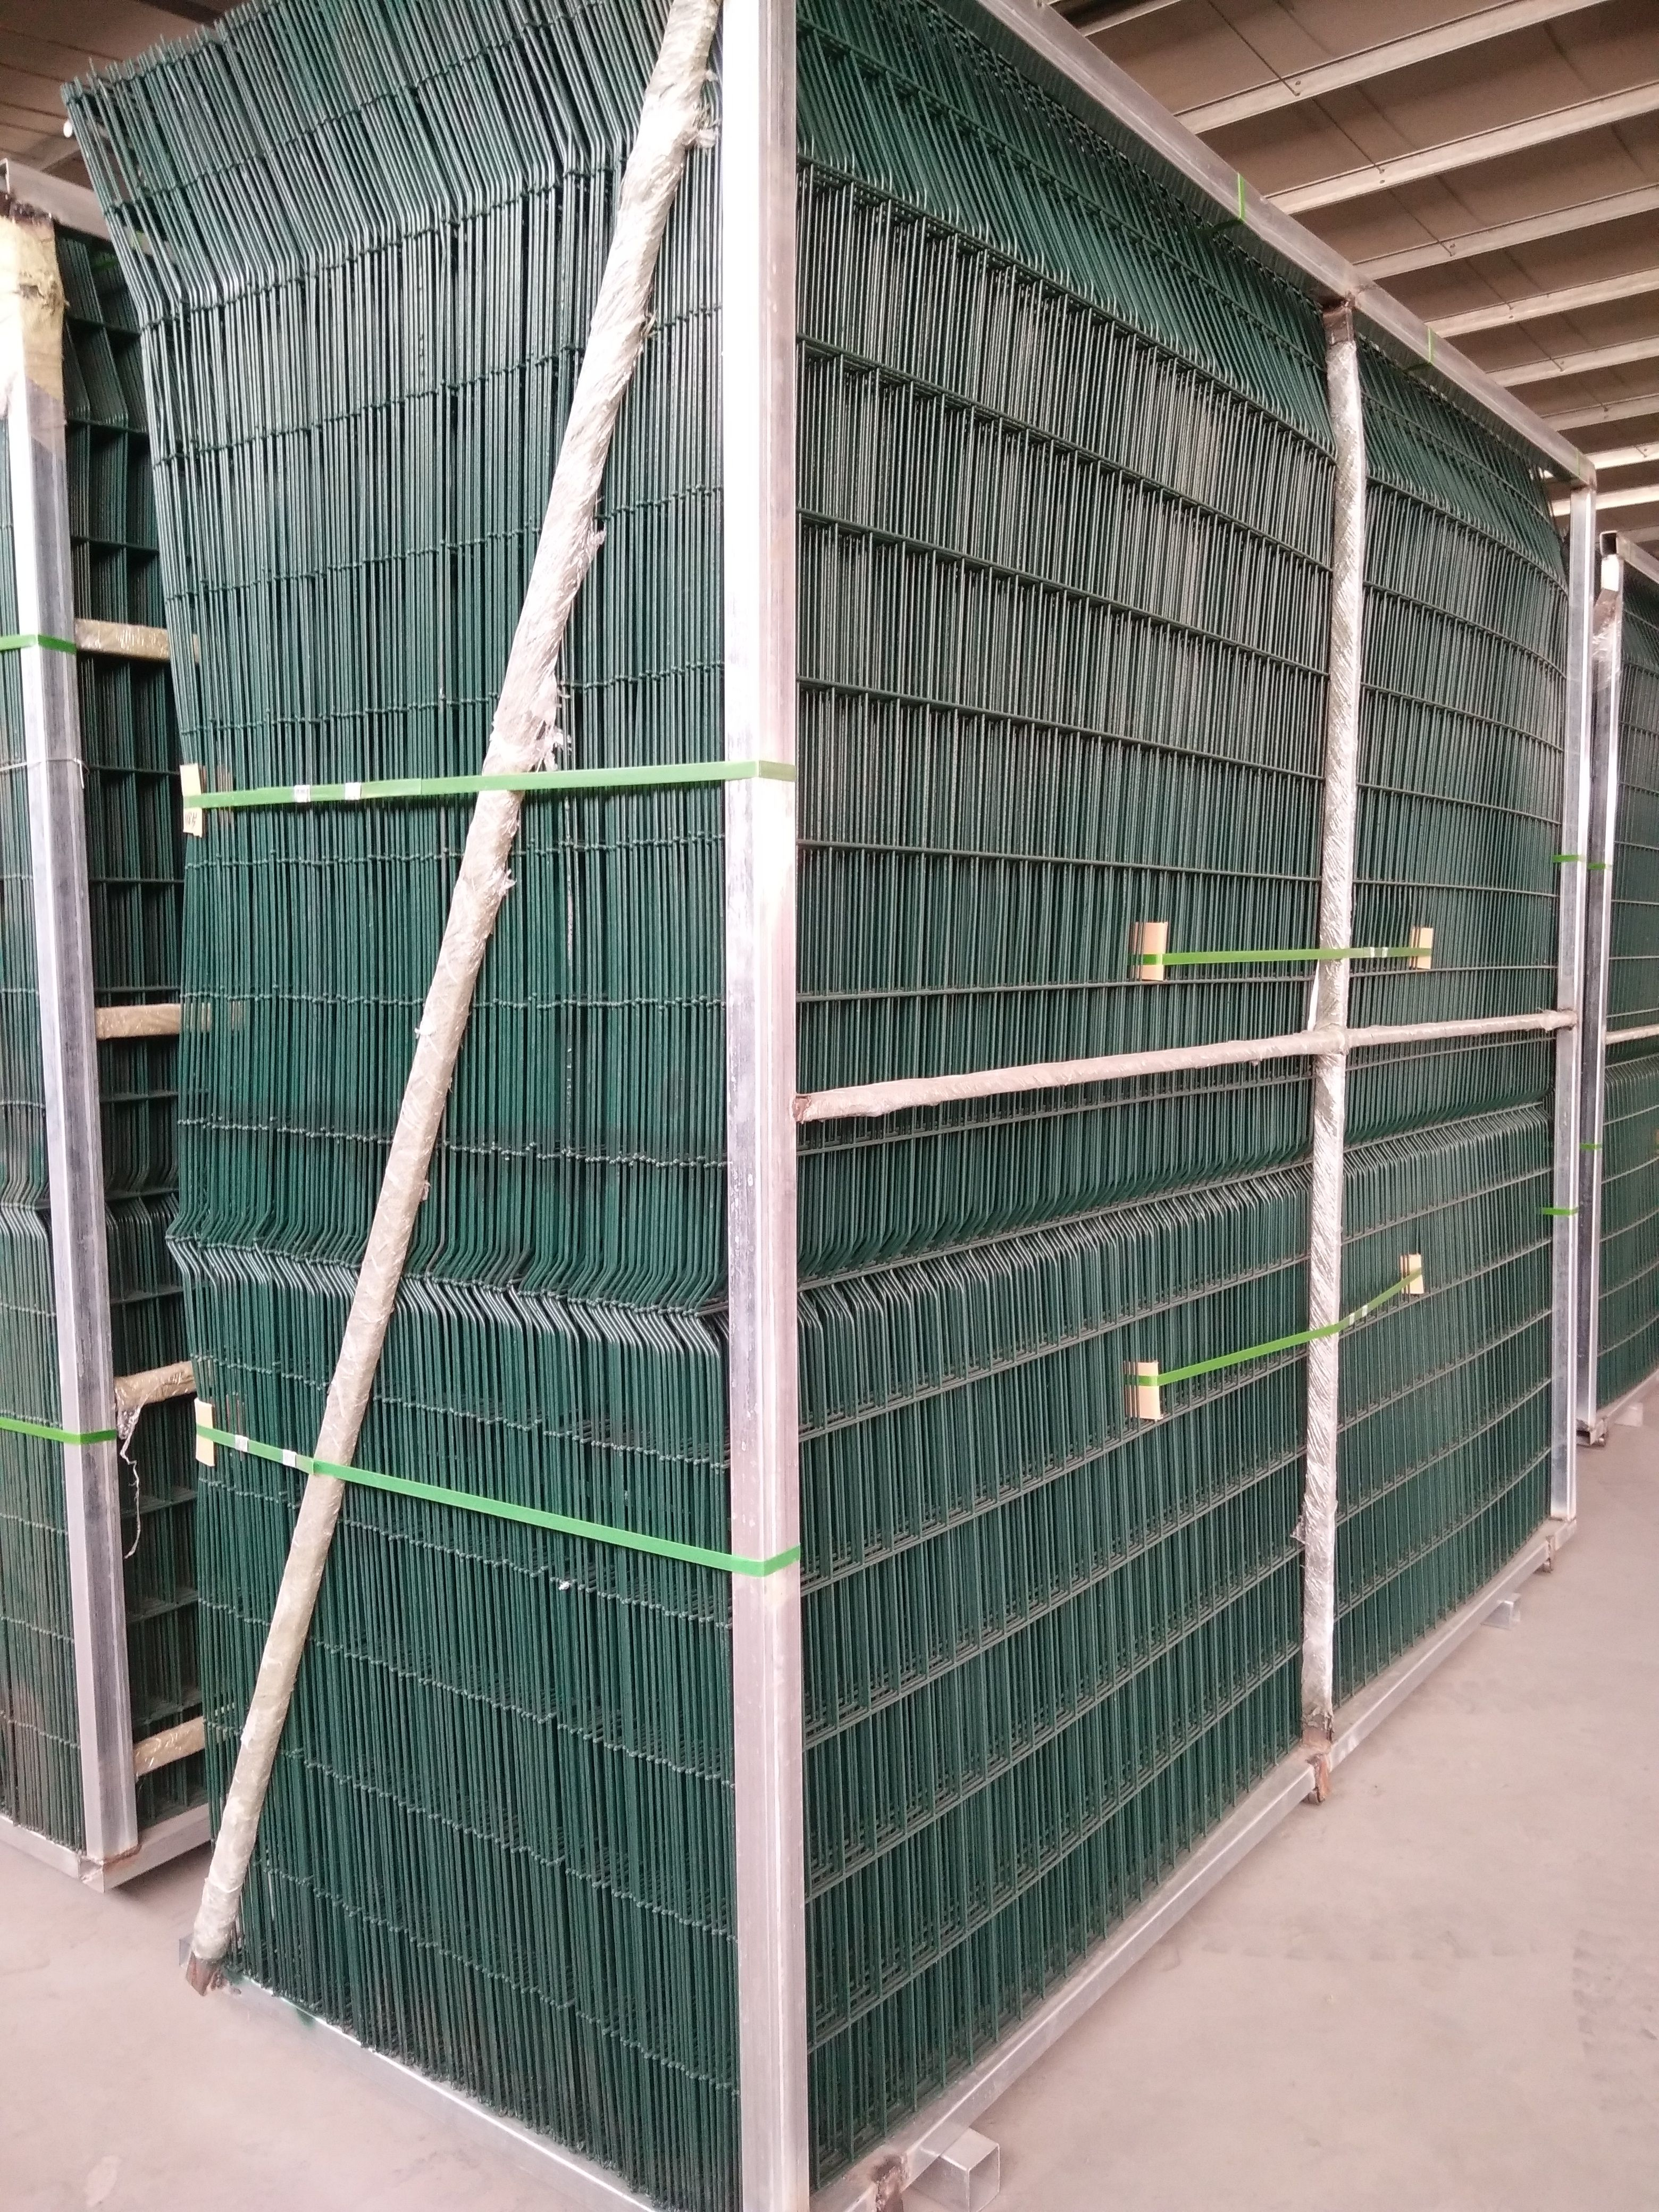 welded wire mesh fence | wire mesh fence | Pinterest | Mesh fencing ...